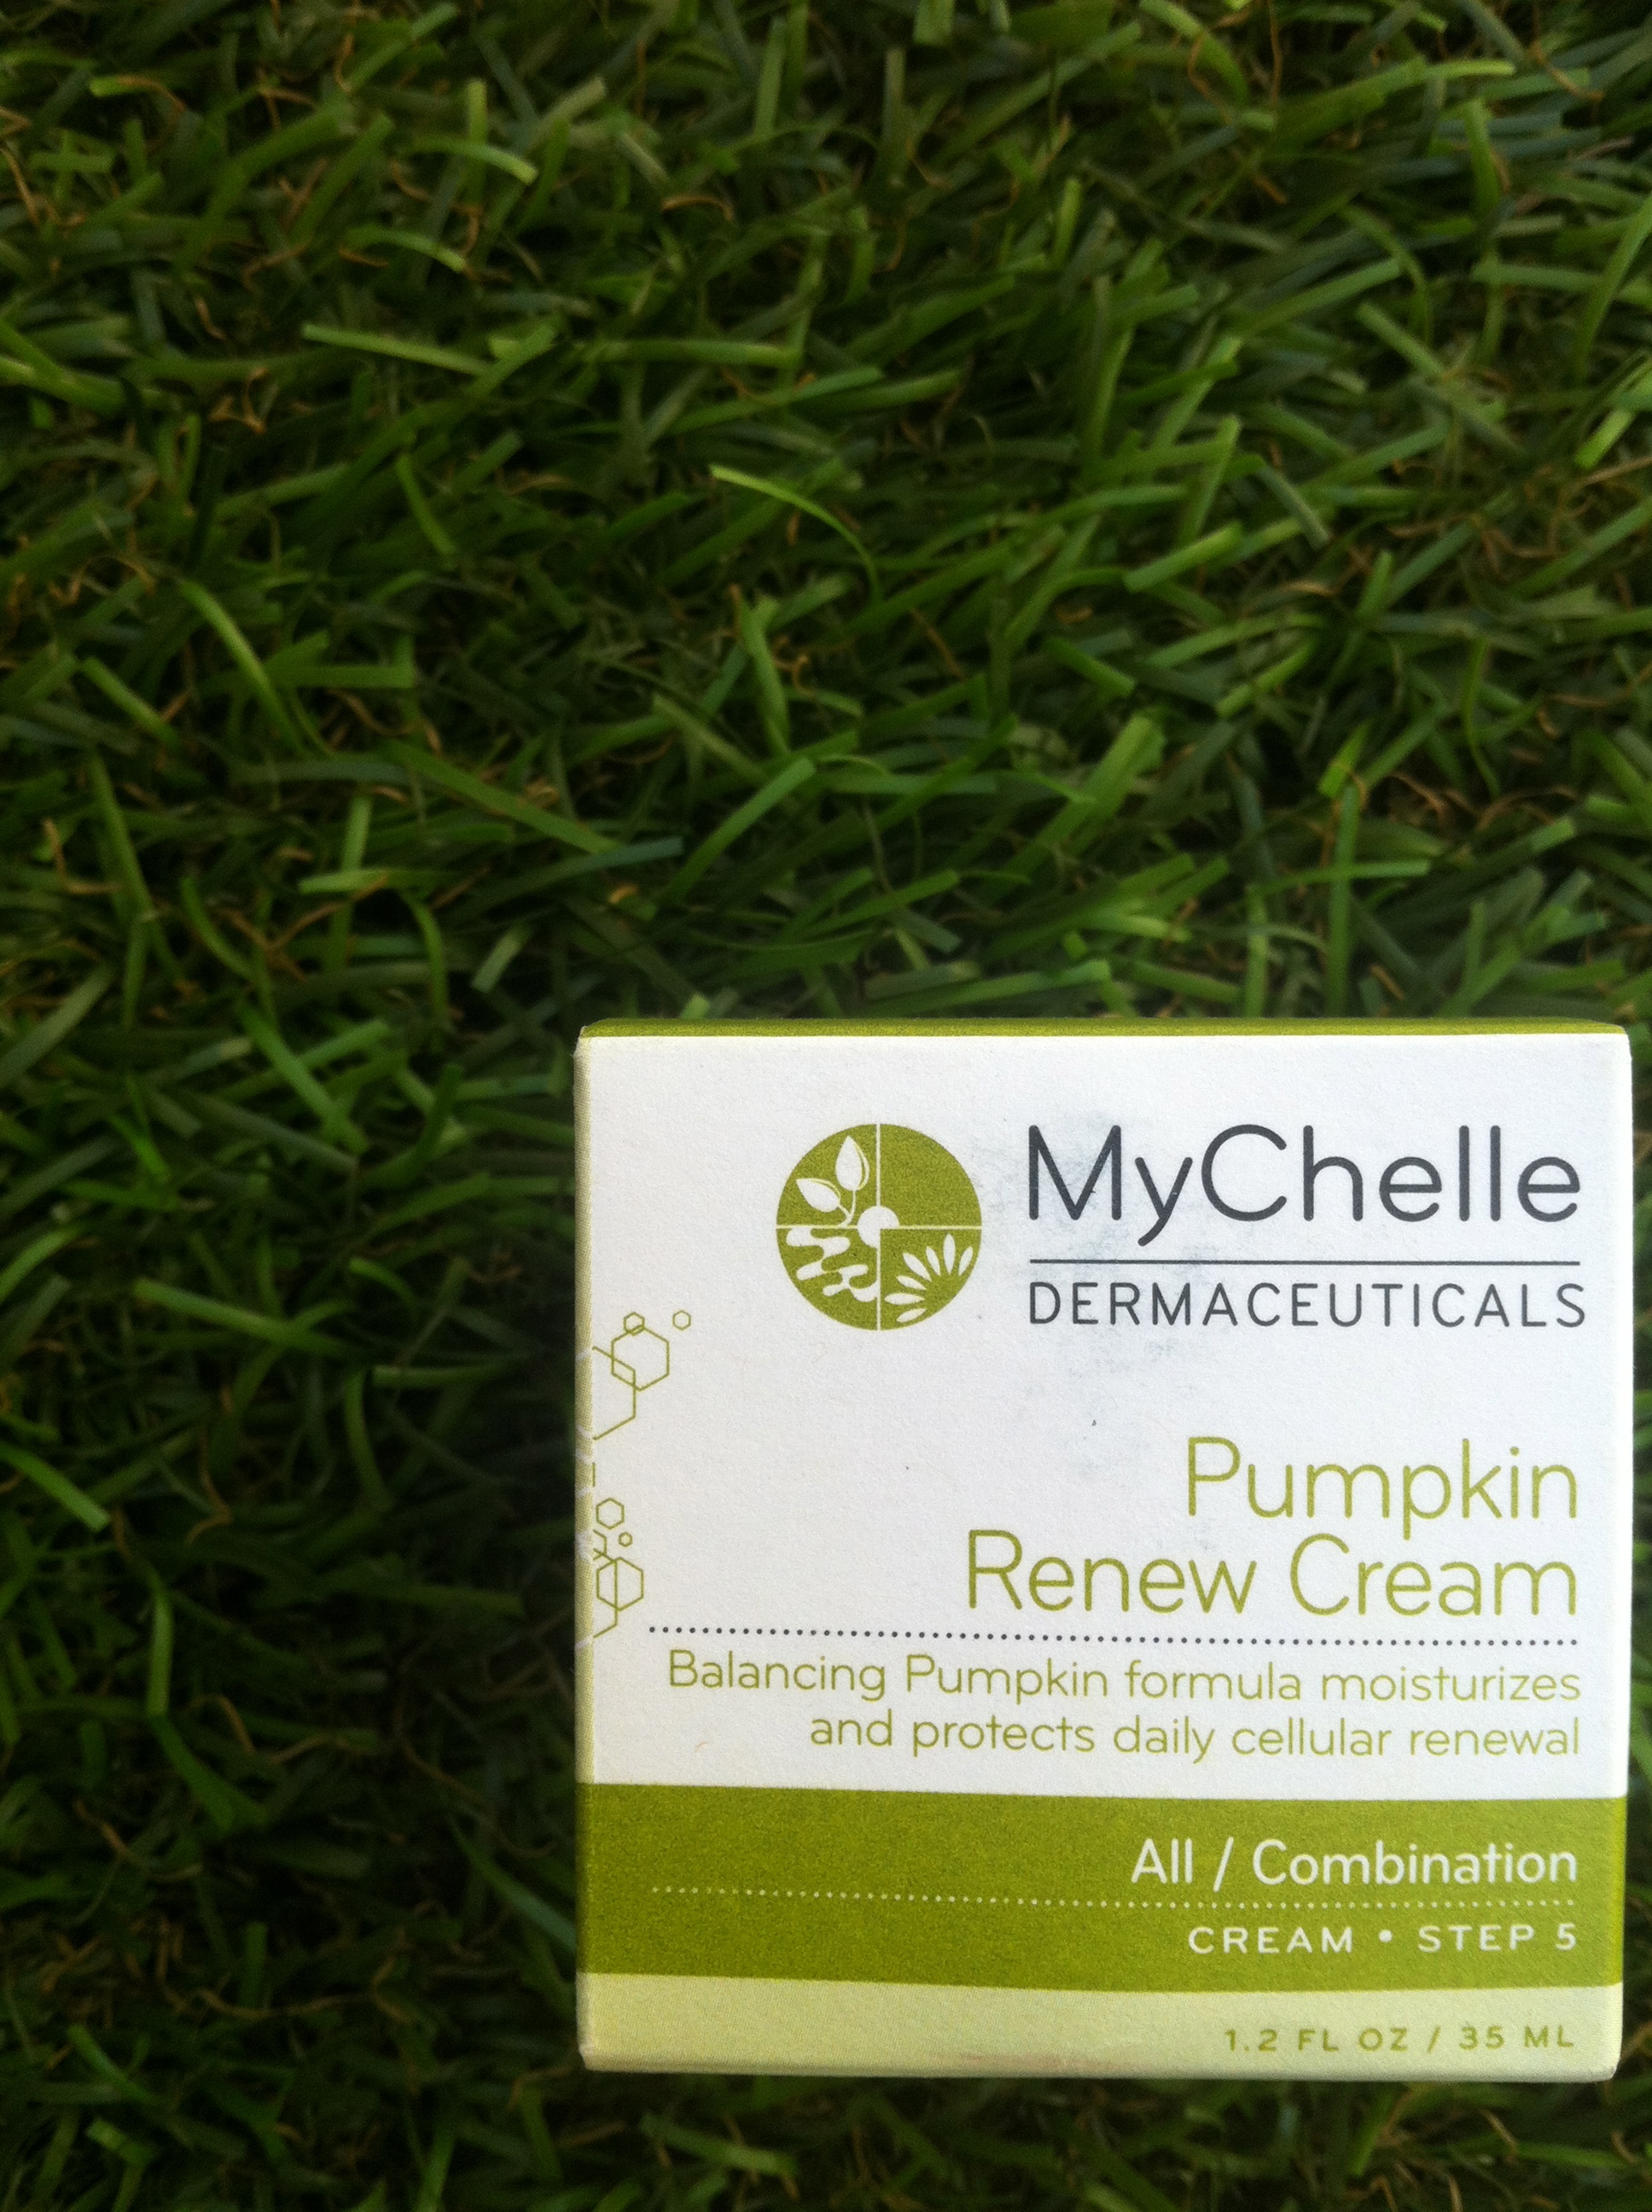 MyChelle Dermaceuticals, non-toxic skin care, natural skin care, mychelle review, mychelle pumpkin renewal cream